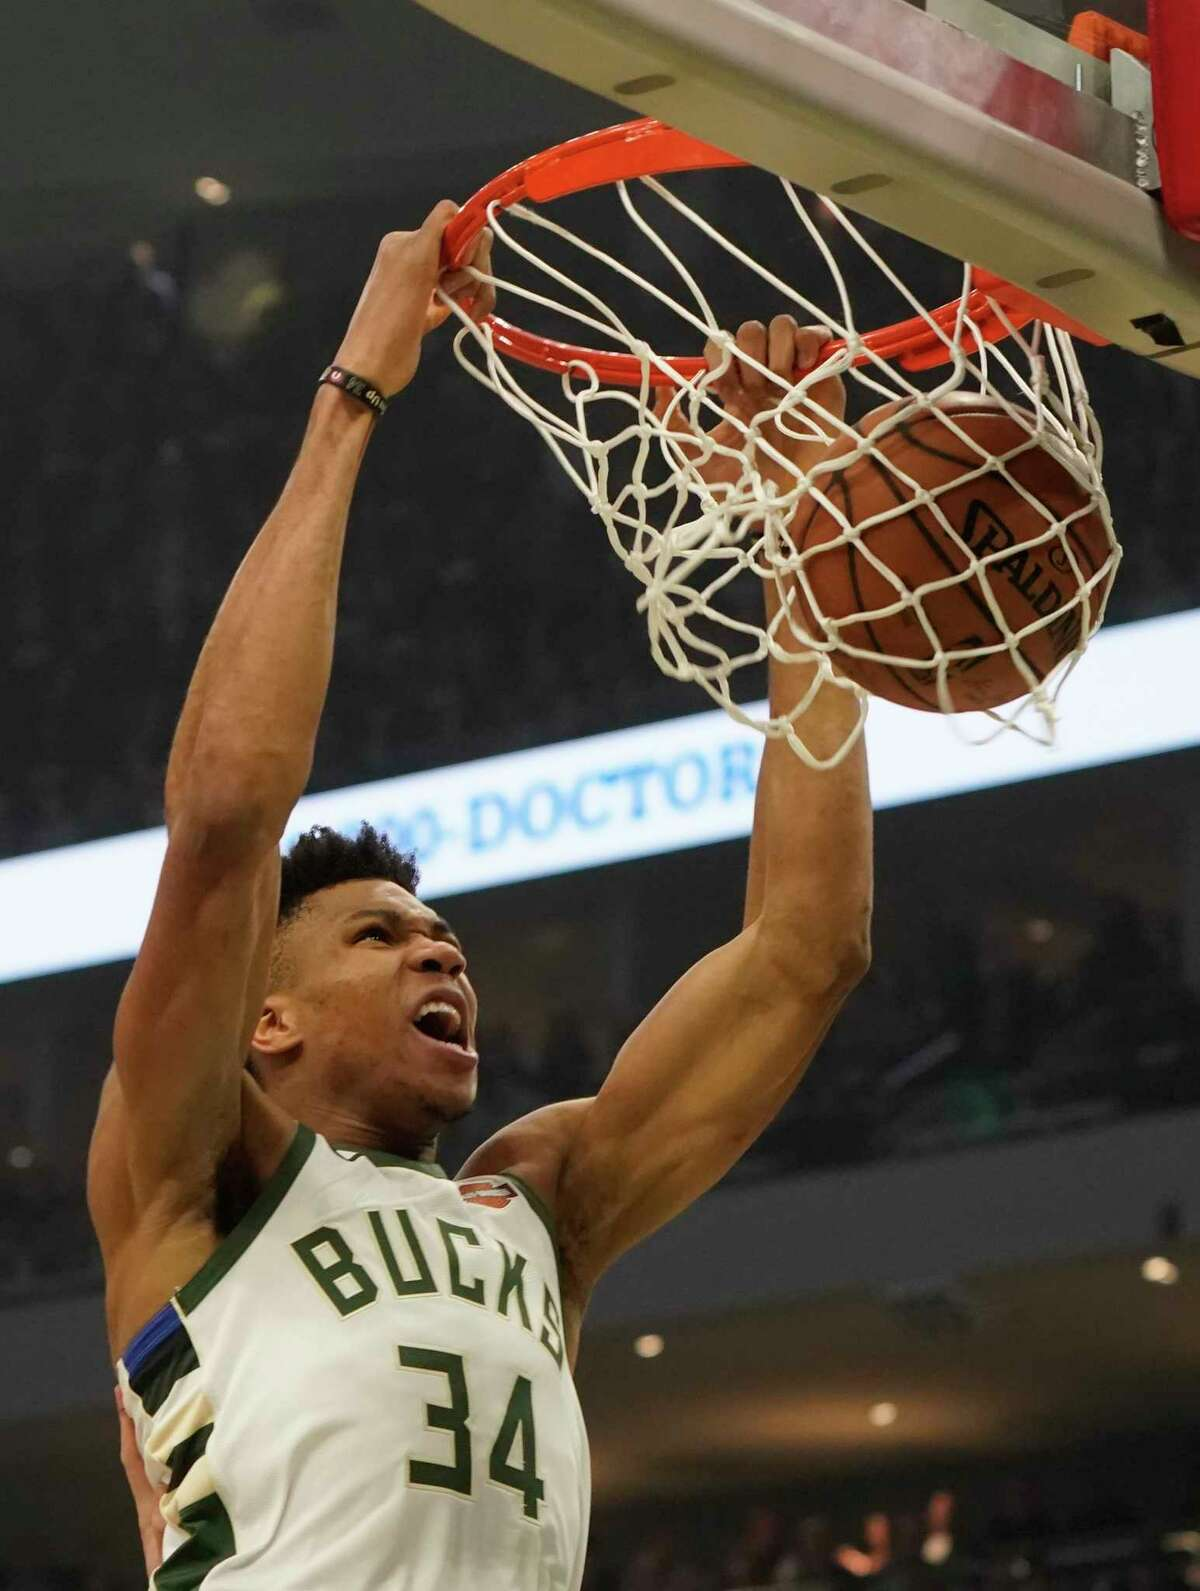 Milwaukee Bucks' Giannis Antetokounmpo dunksduring the first half of Game 2 of the NBA Eastern Conference basketball playoff finals against the Toronto Raptors Friday, May 17, 2019, in Milwaukee. (AP Photo/Morry Gash)